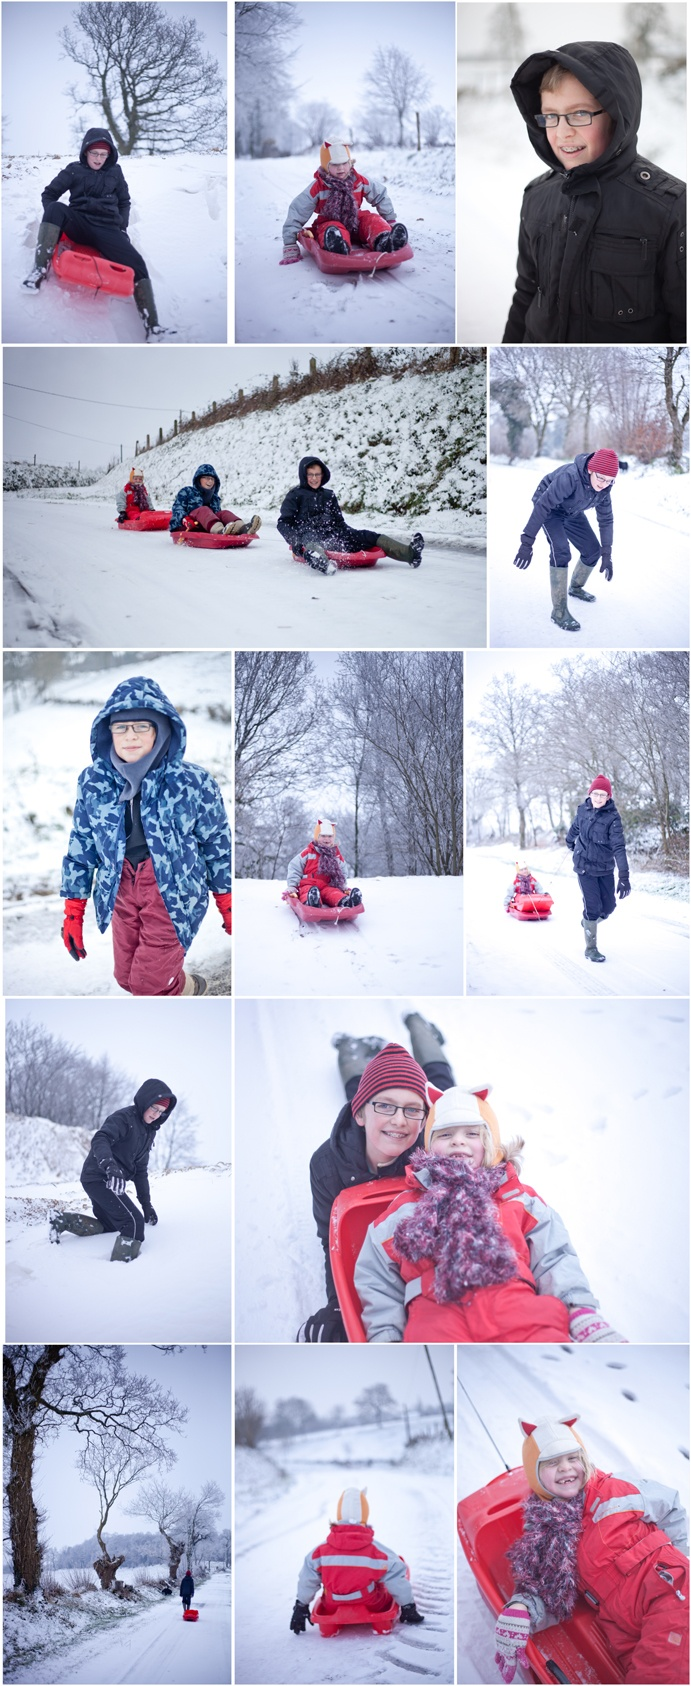 Great fun doing a children's portrait session in the snow in Normandy, France (Villedieu-les-poeles, Manche)    http://photos.anibasphotography.fr/seance-photo-enfants-dans-la-neige-en-basse-normandie